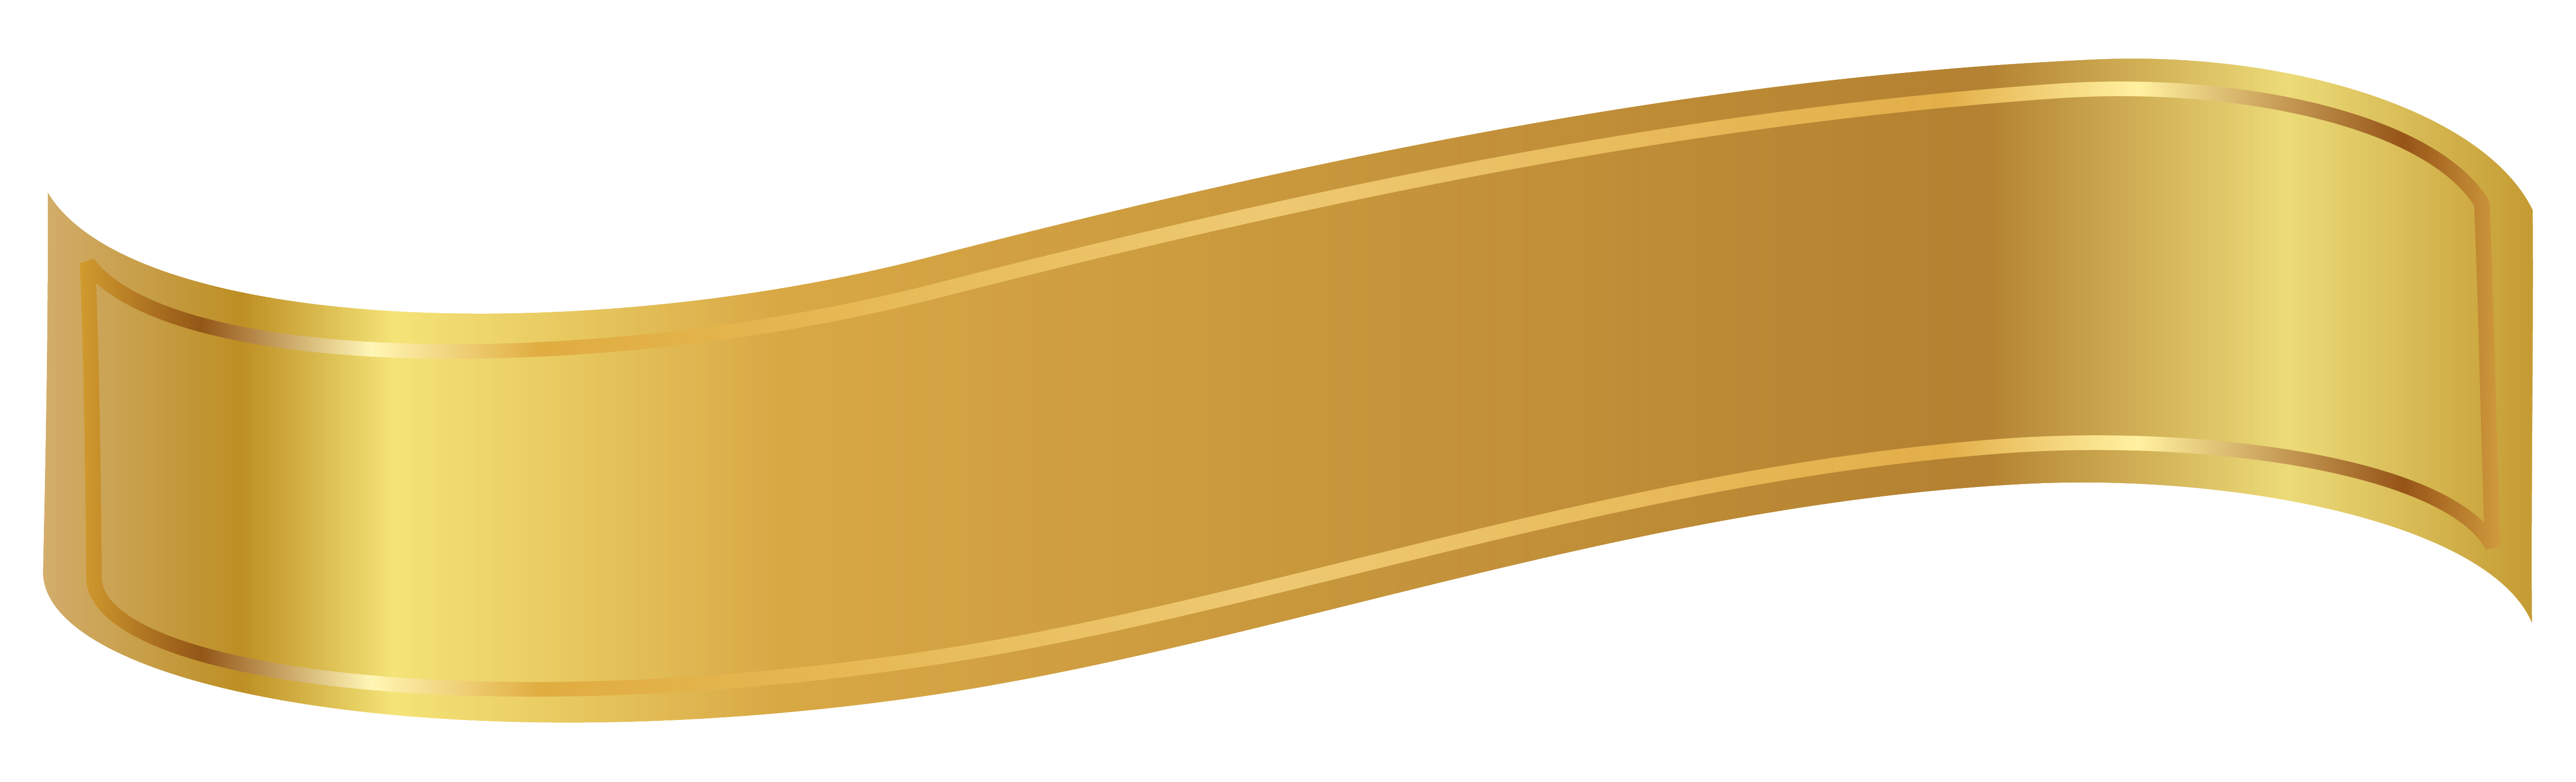 Gold ribbon png. Banner clipart image banners